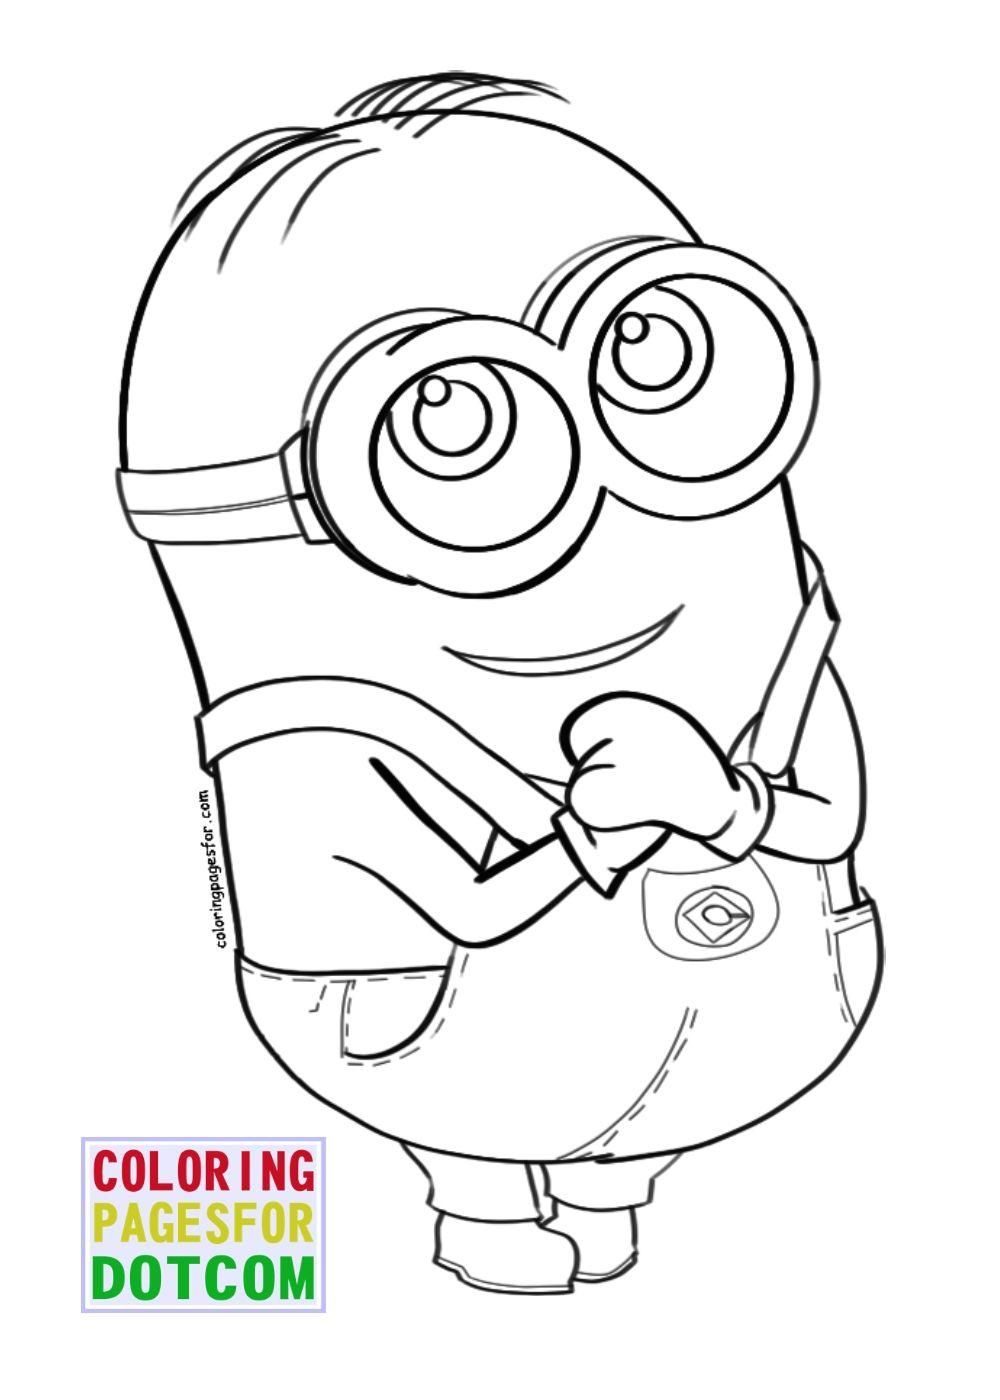 38 Childrens Colouring Pages To Print Kleurplaten Minions Harriet Tubman